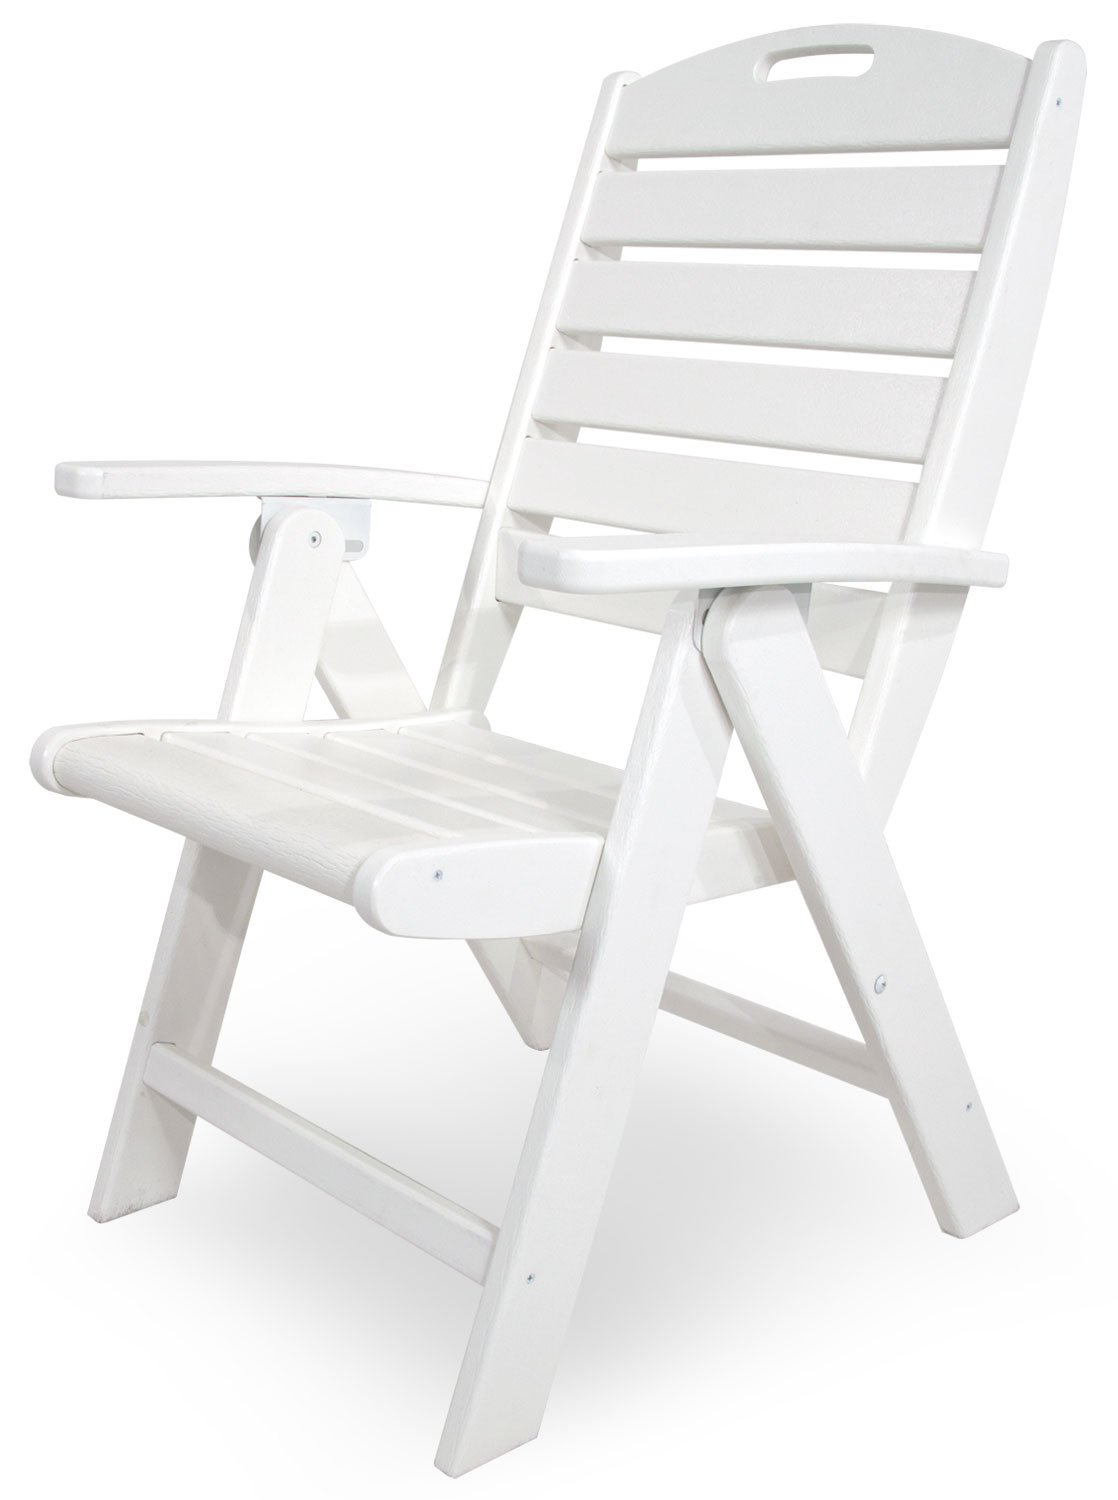 Amazon com trex outdoor furniture yacht club folding highback chair classic white patio dining chairs garden outdoor